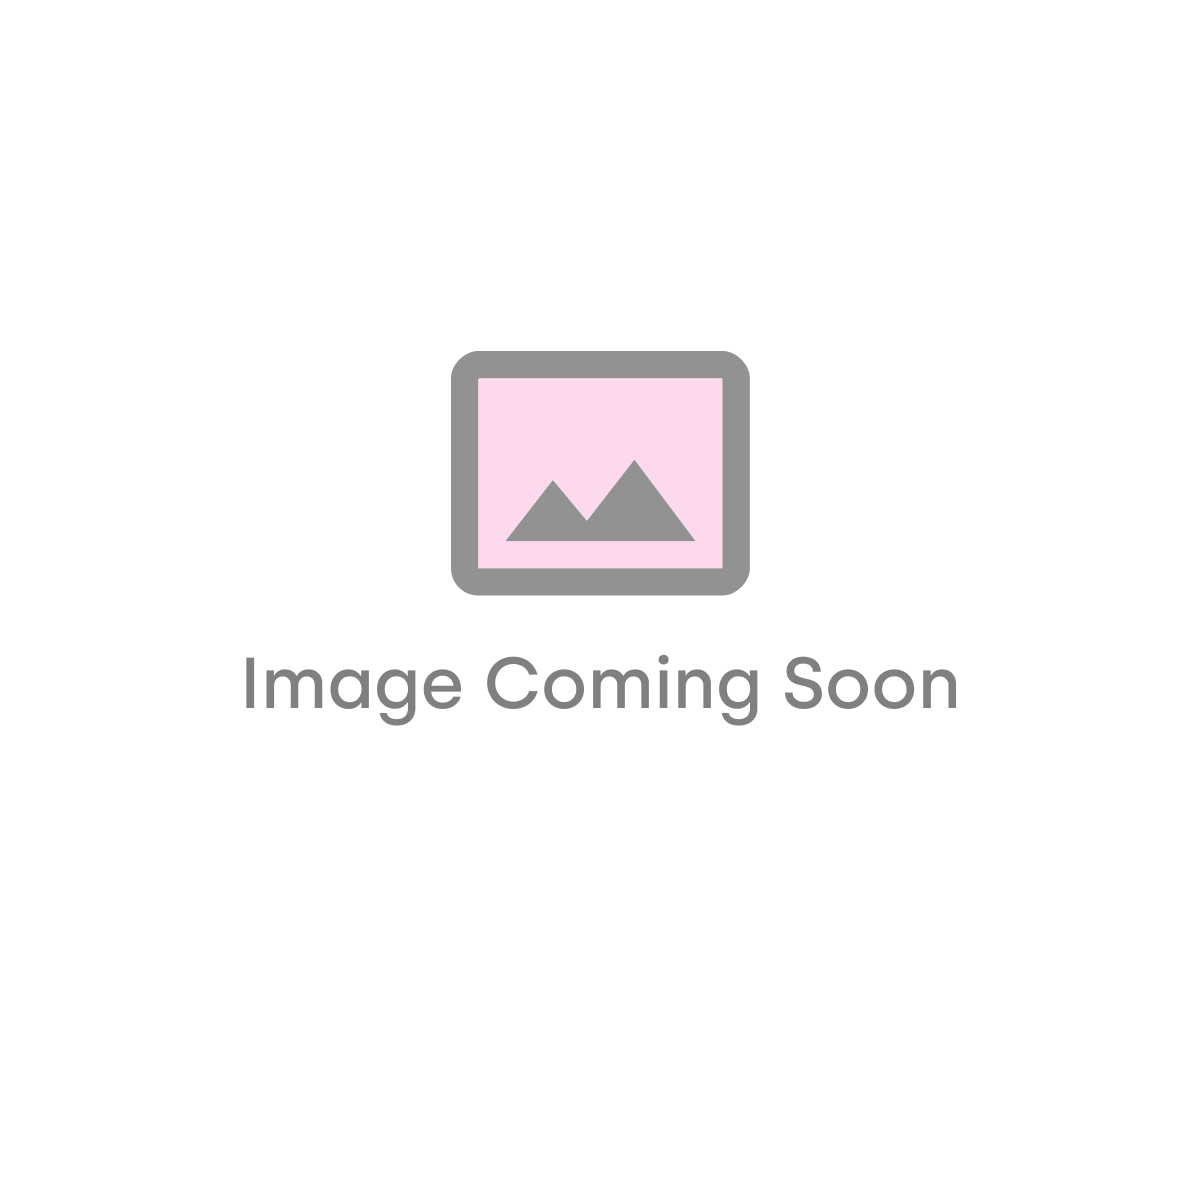 Porto Eco Complete Shower Bath Suite - Left Hand (11542)